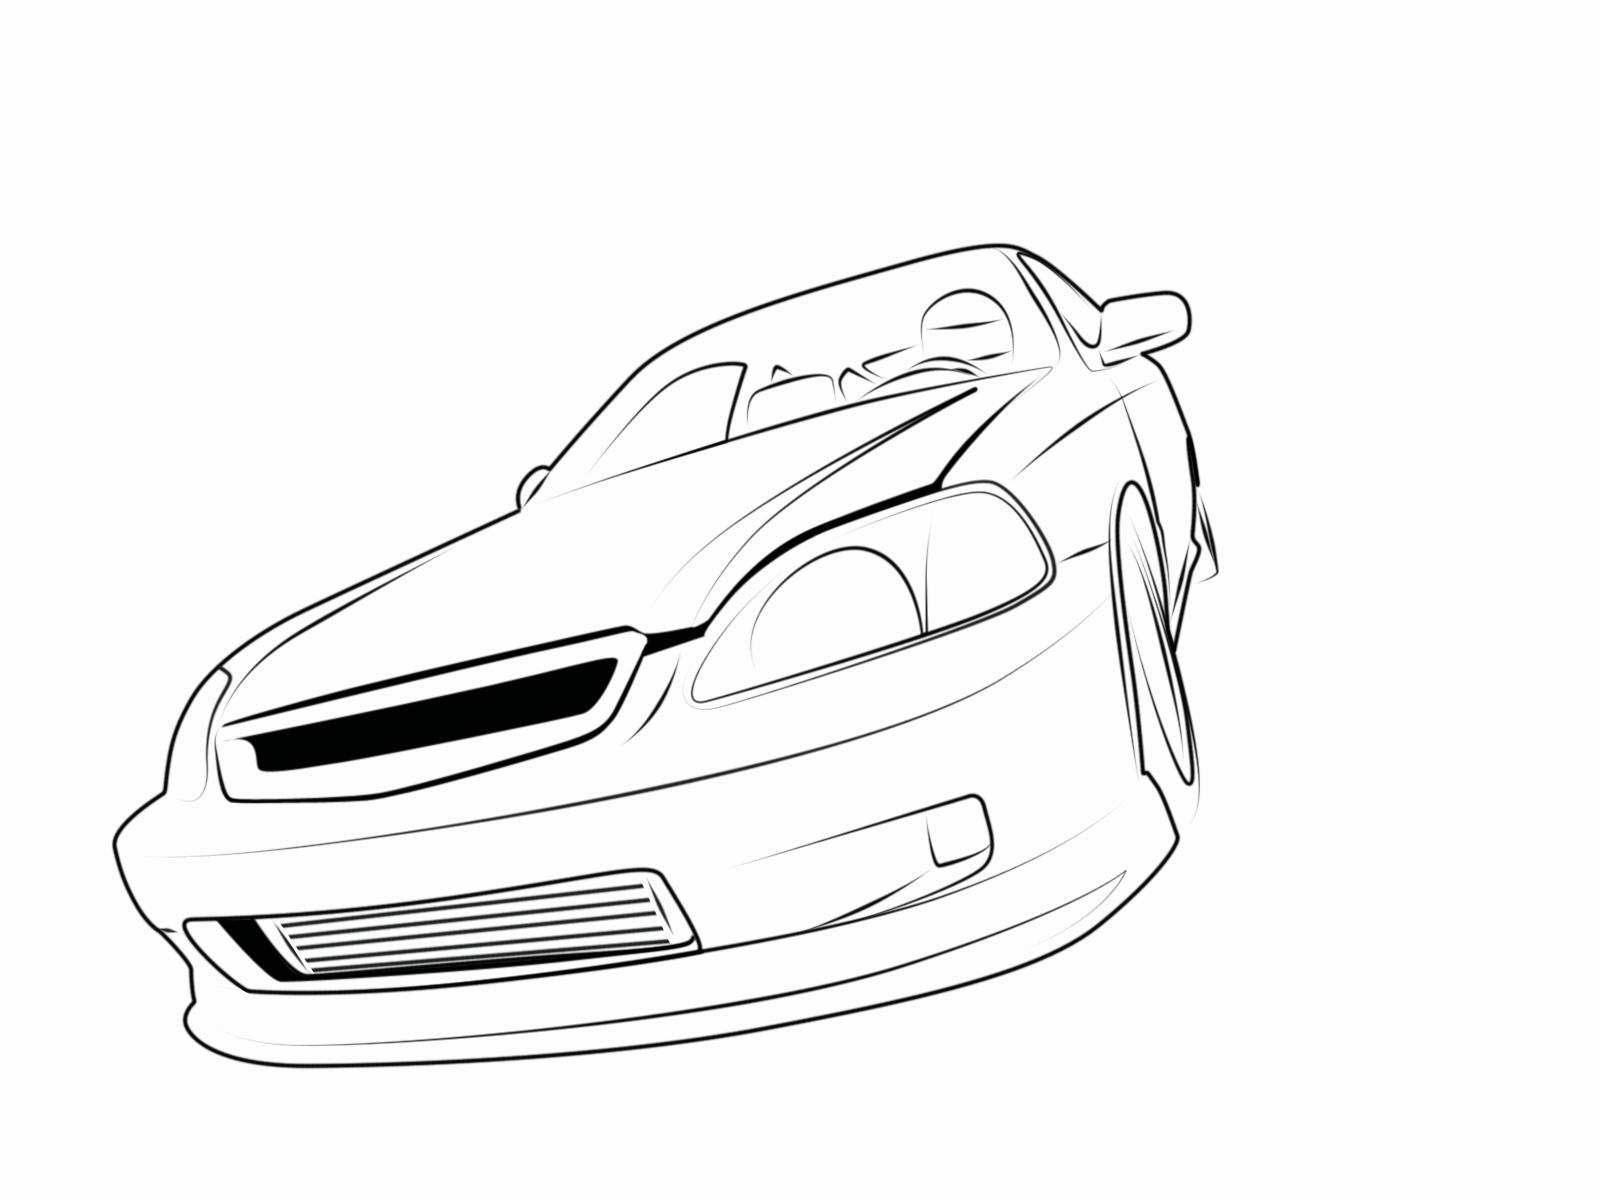 94 Civic Coloring Pages Coloring Pages